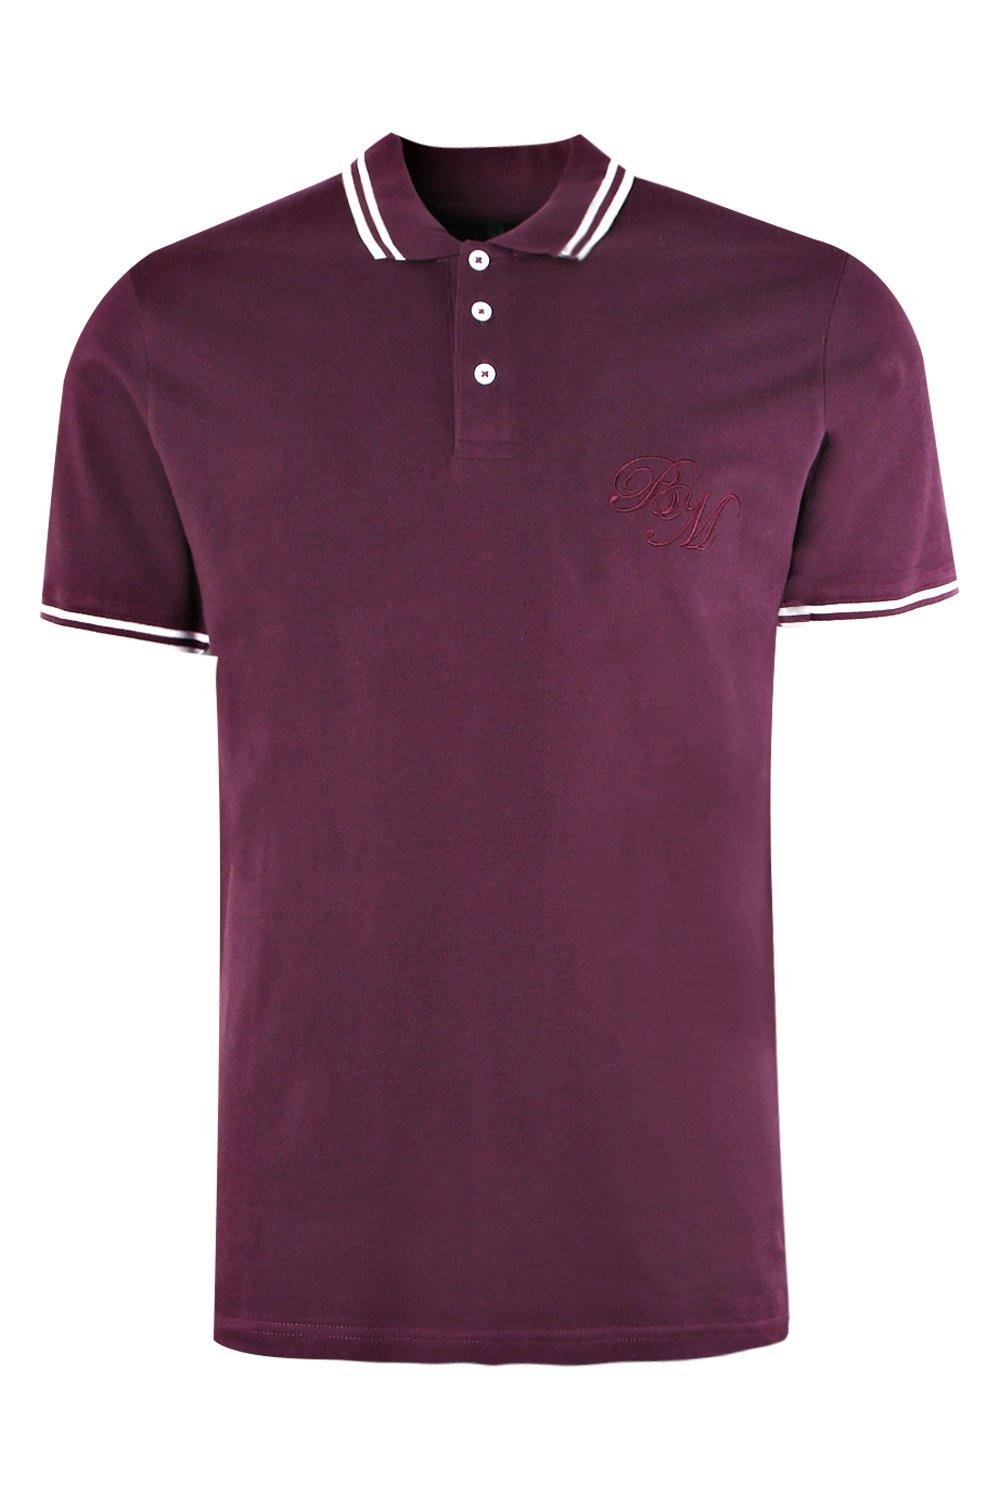 boohooMAN wine BM Embroidered Pique Polo With Tipping